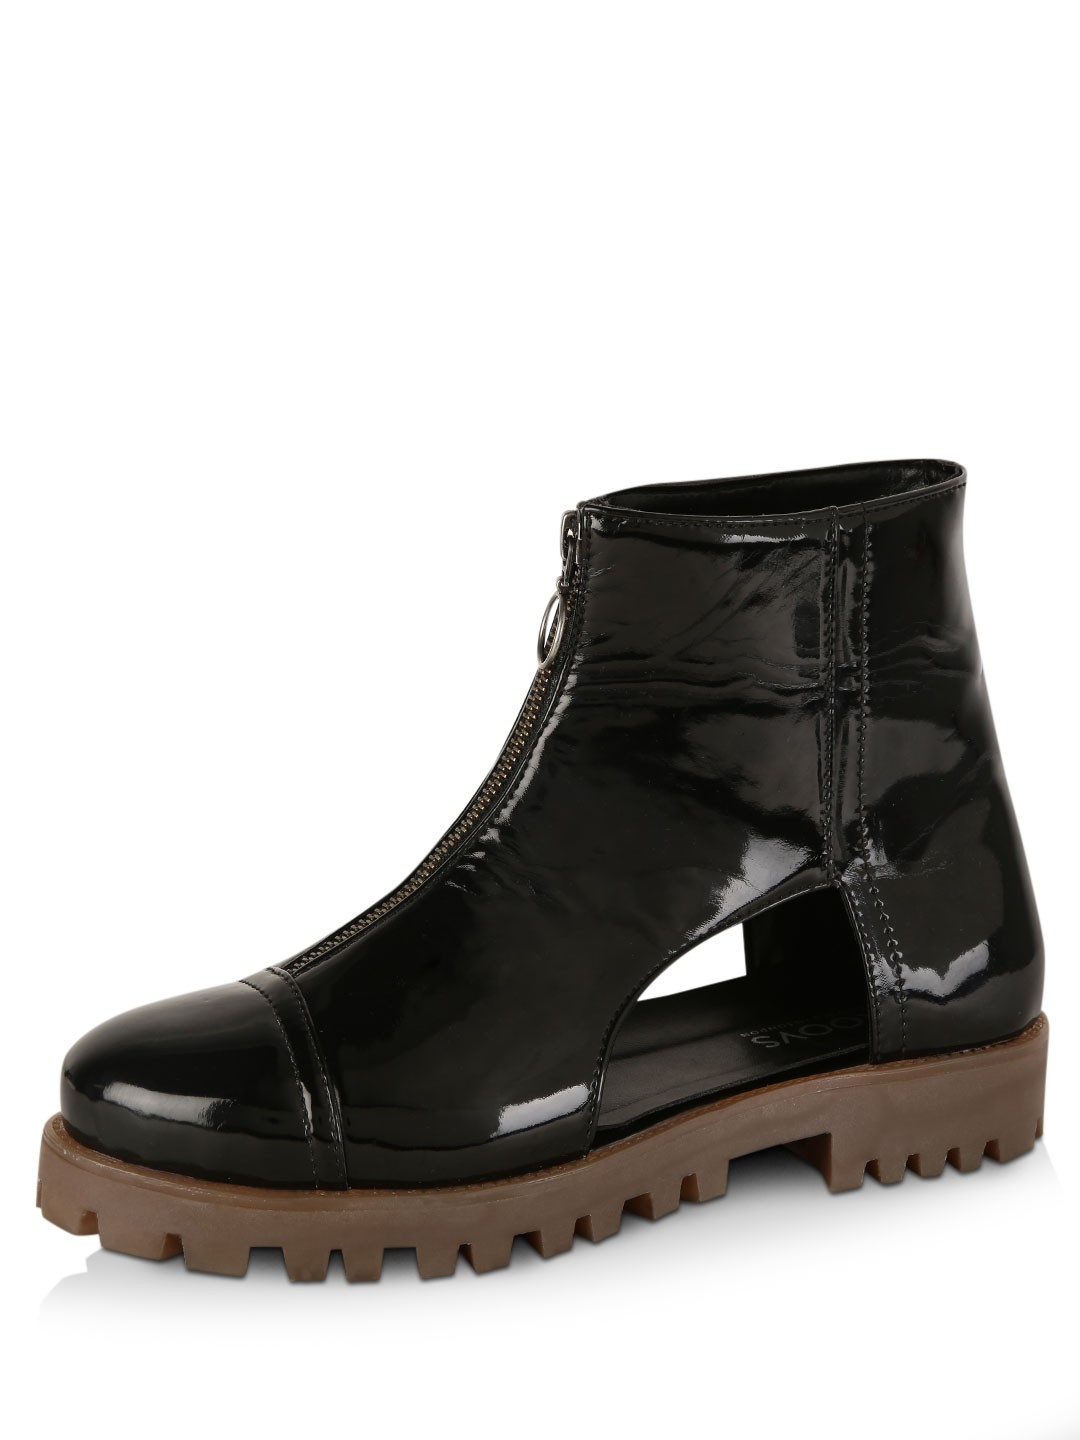 Excellent Buy NEW LOOK Diana Boots For Women  Women39s Black Boots Online In